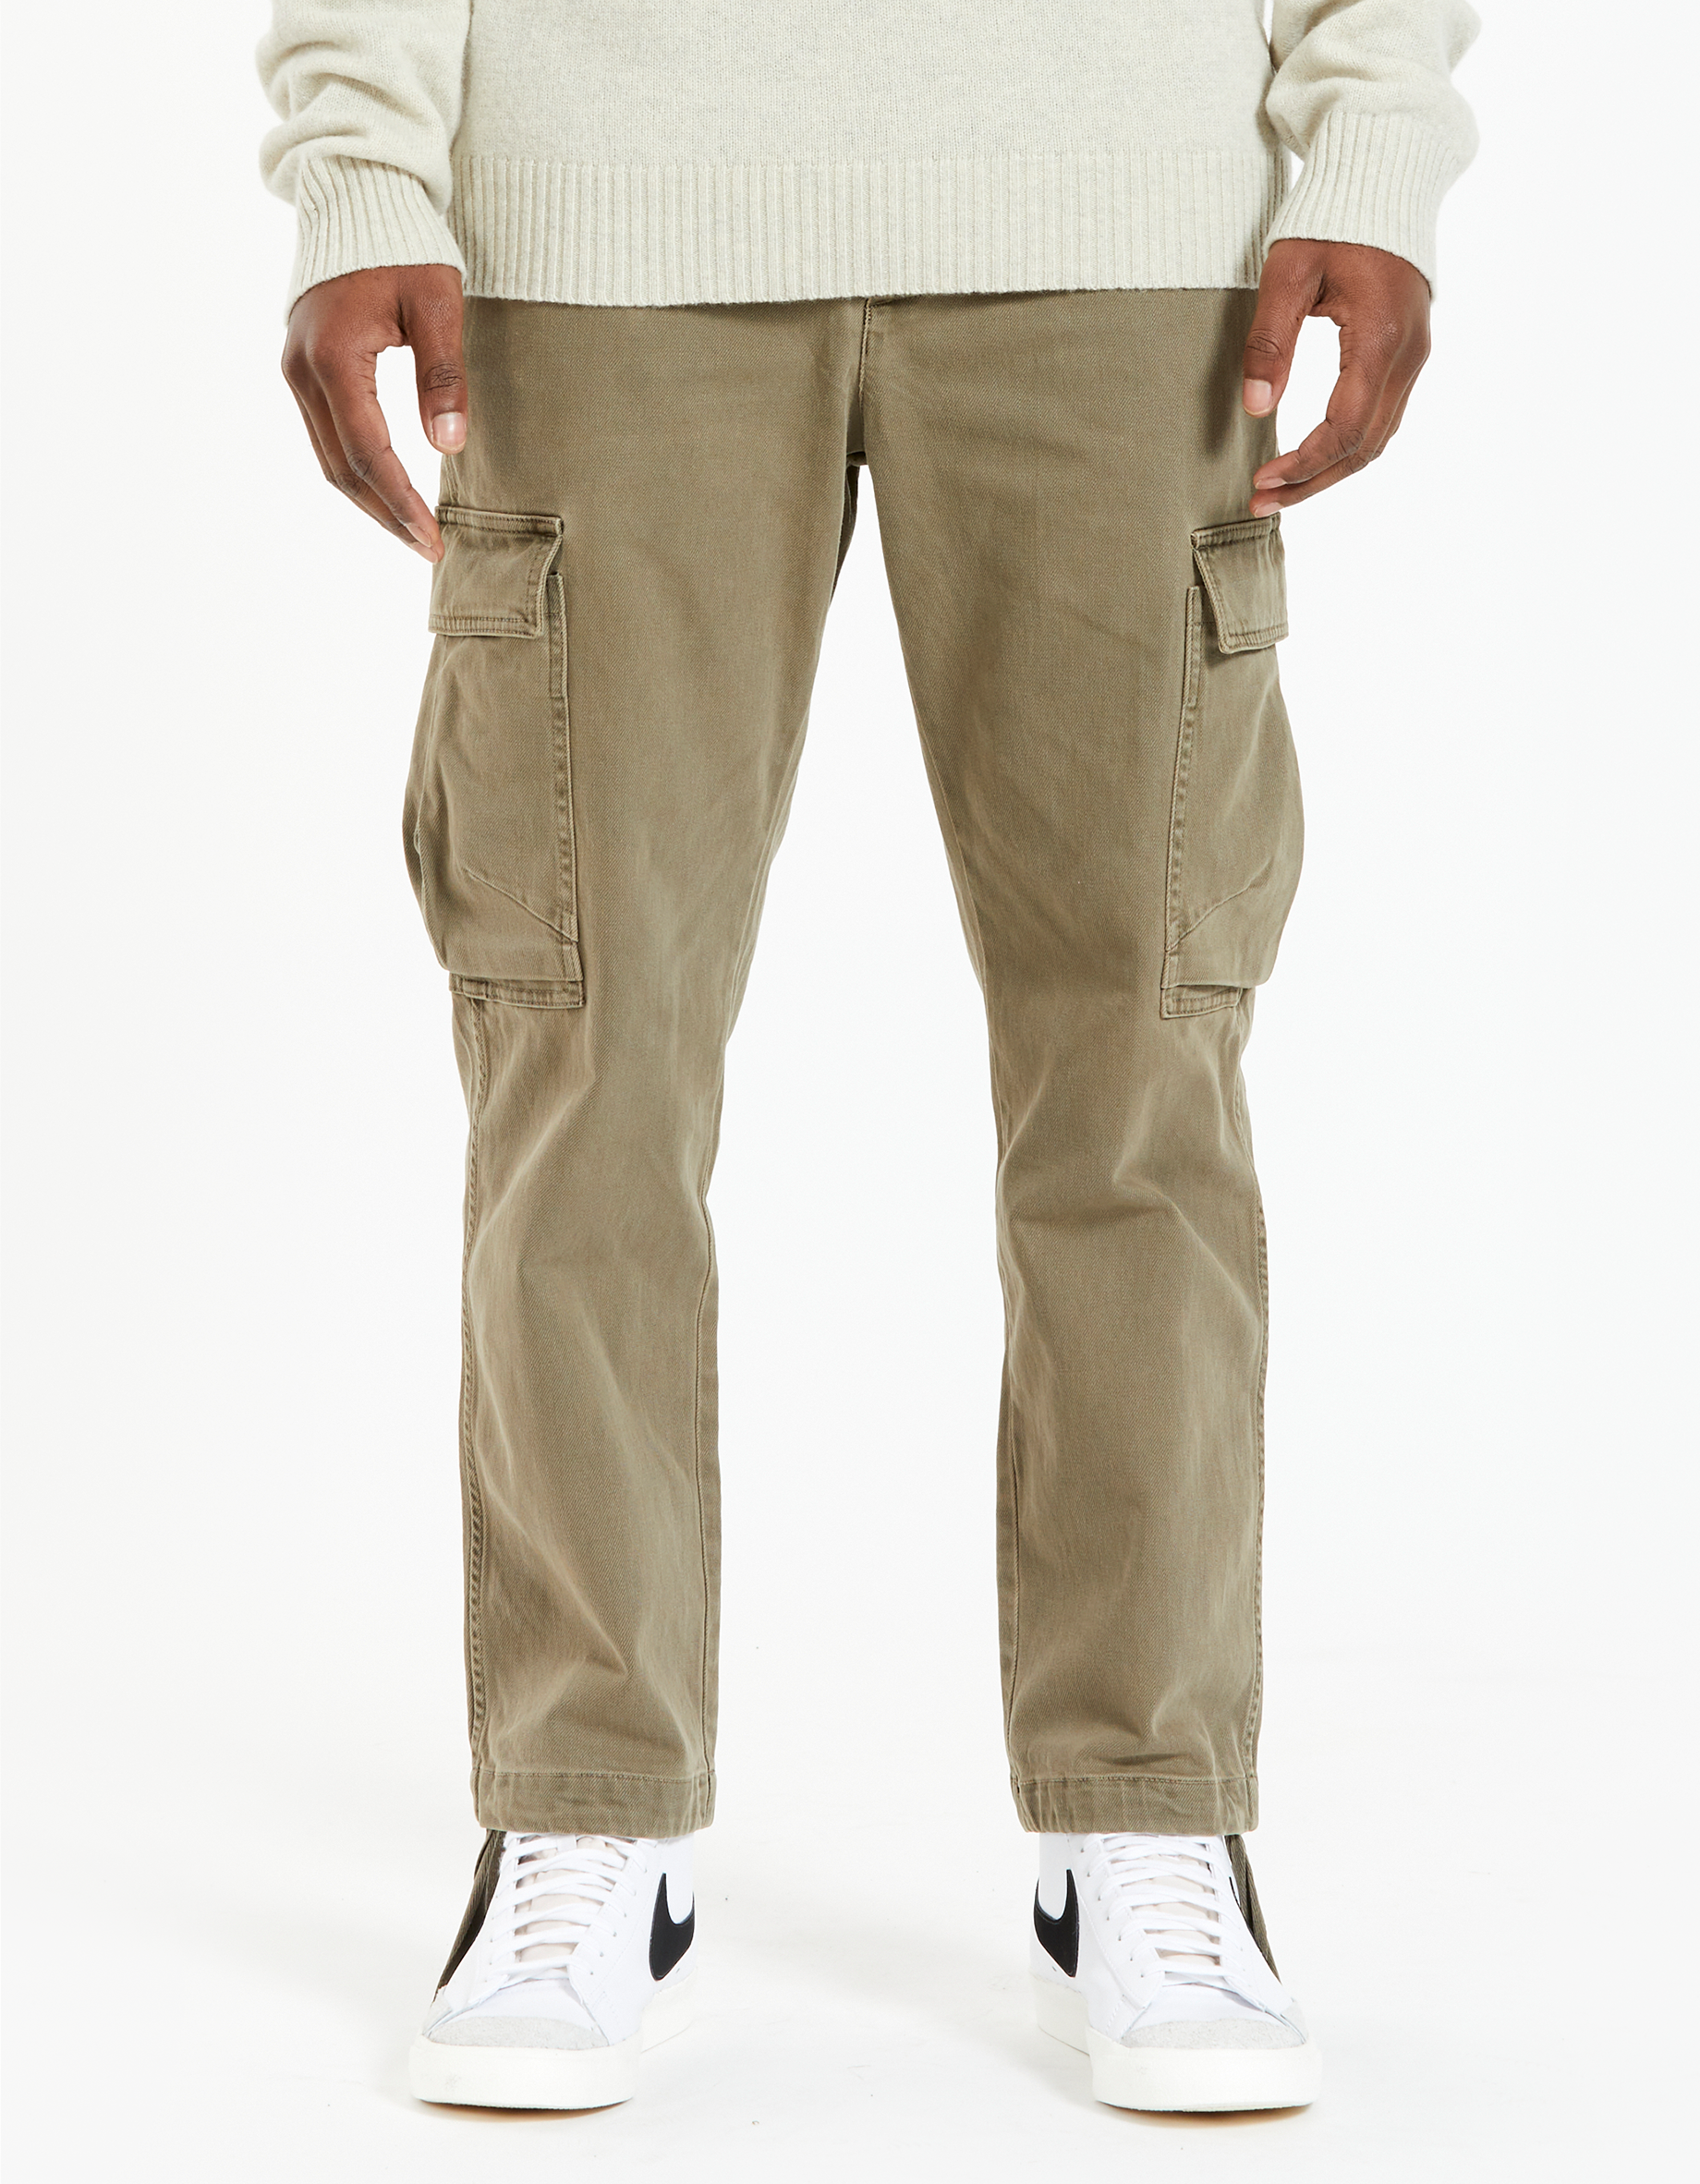 Fore Trouser - Mangrove Brown